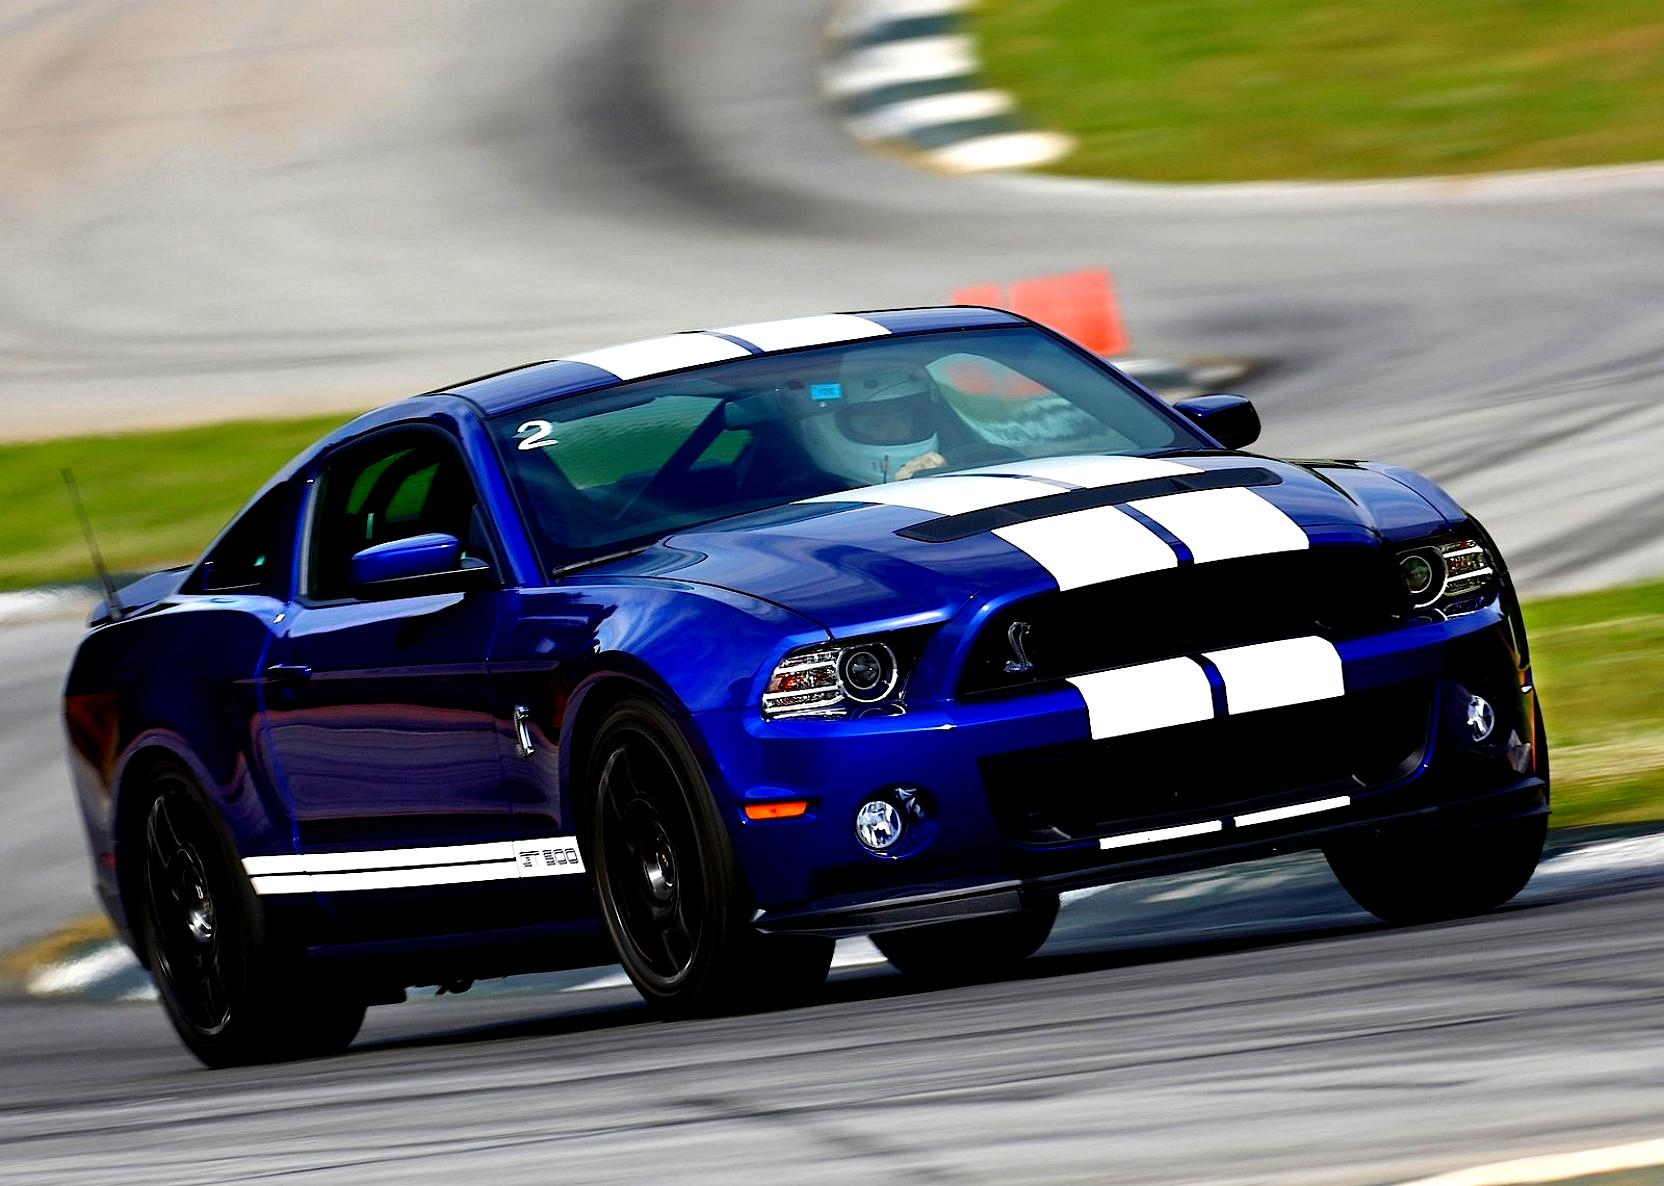 Ford Mustang Shelby GT500 2012 on MotoImg